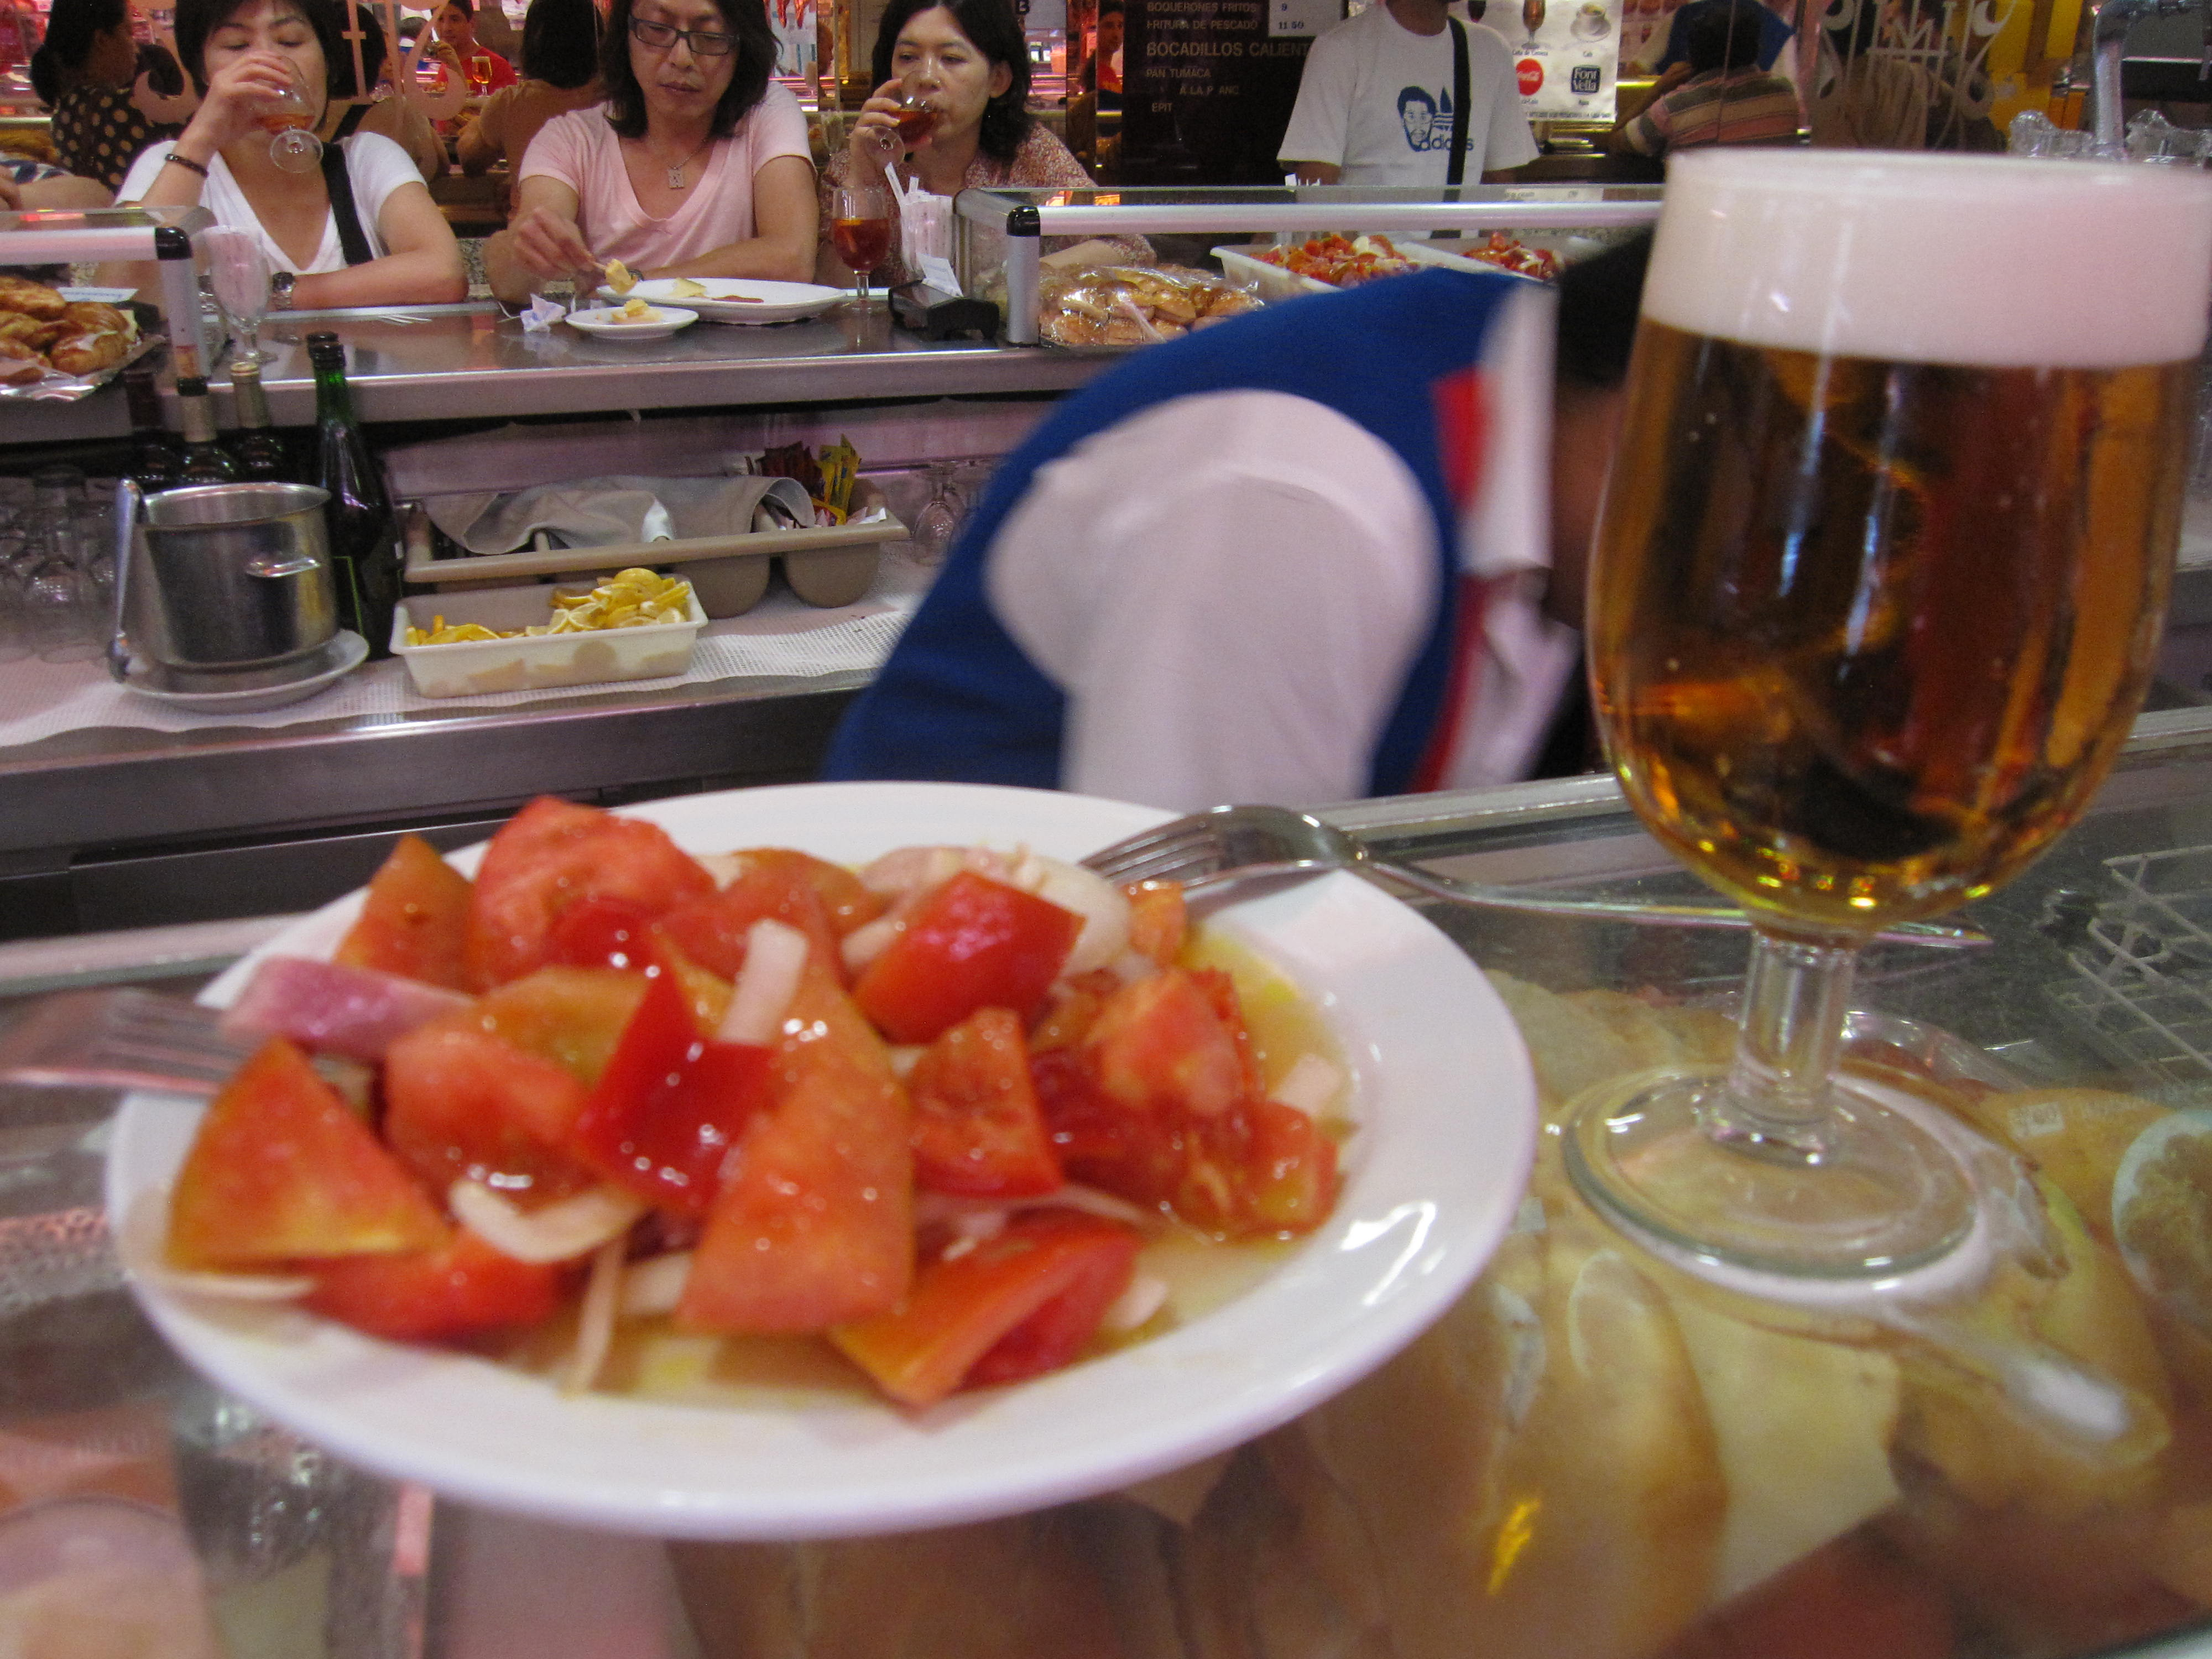 A stop for some tomato salad at pint of beer at Museo De Jamon